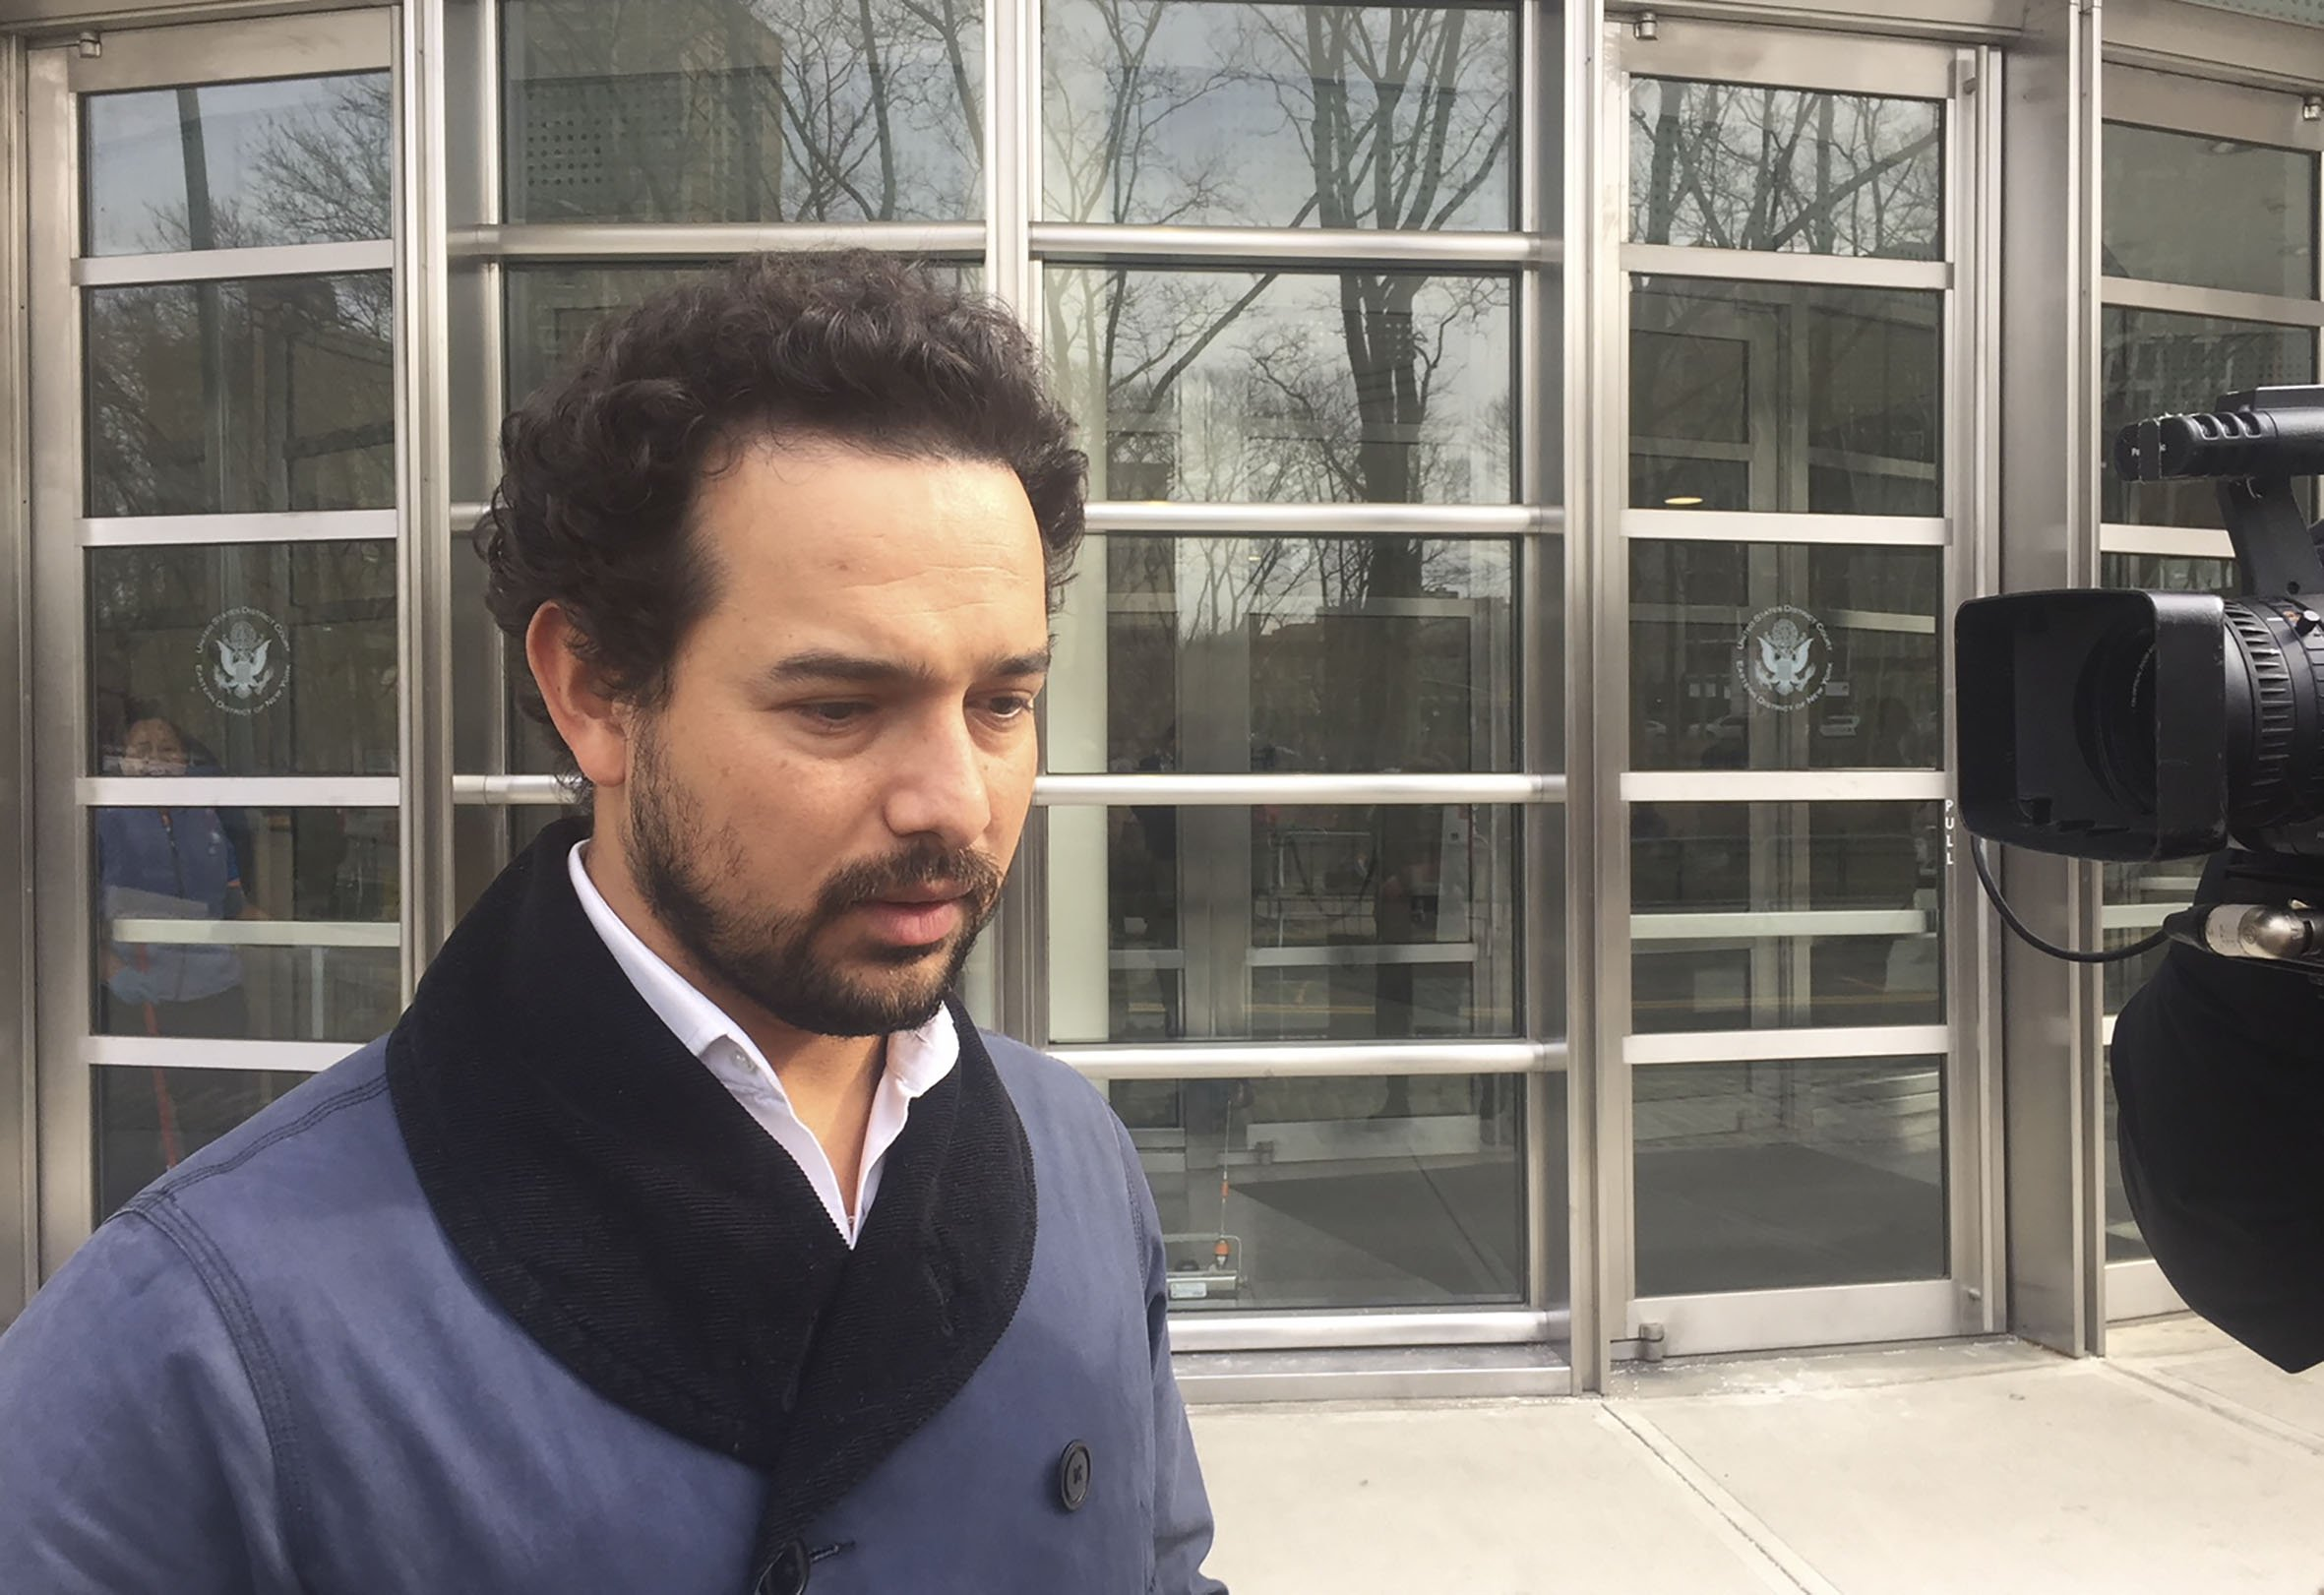 Mexican actor Alejandro Edda, 34, who played Joaquin  El Chapo  Guzman in Netflixs  Narcos: Mexico , walks past media after he attended the trial of the Mexican drug lord in Brooklyn federal court on Jan. 28, 2019.